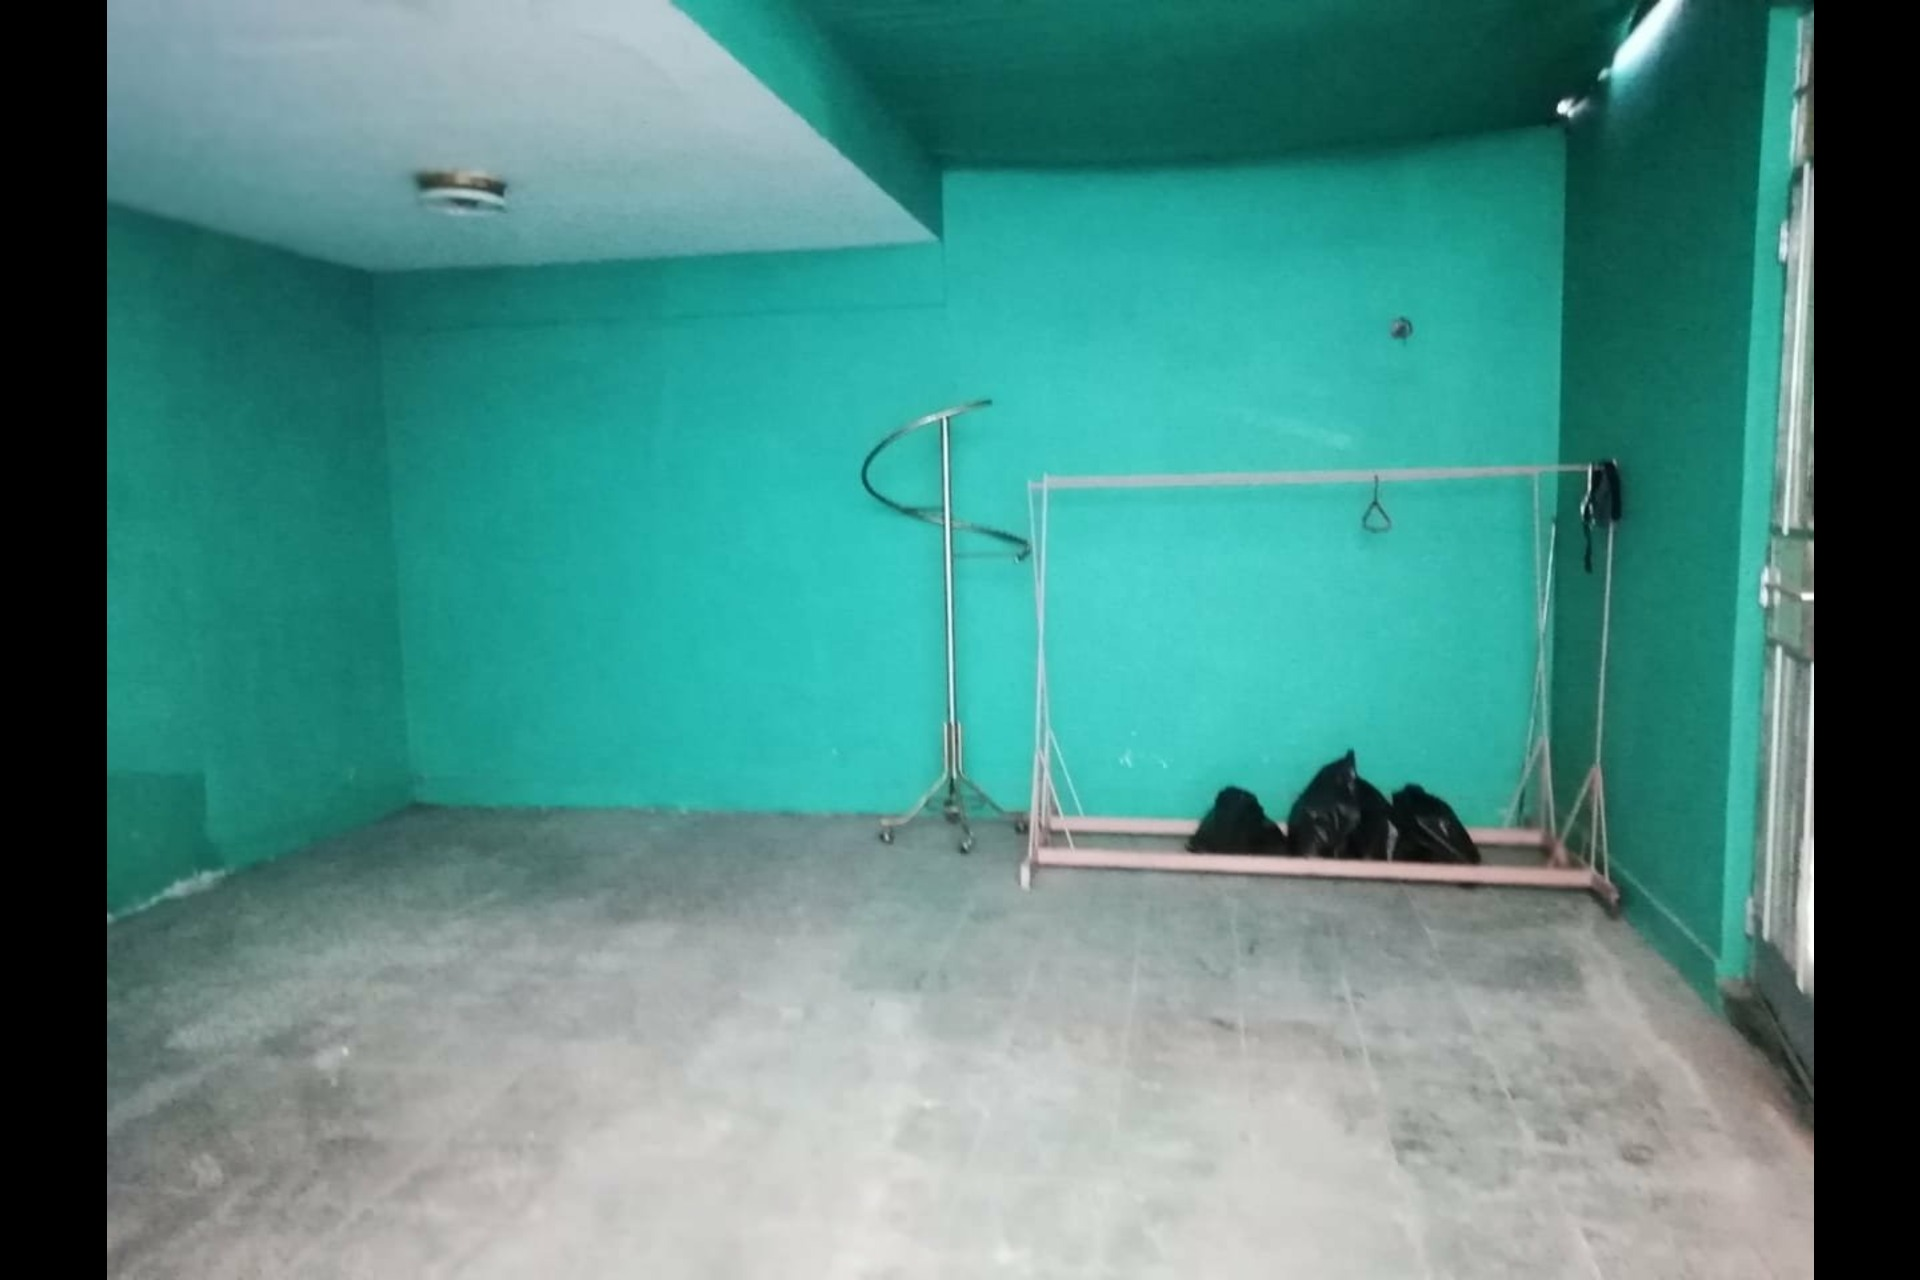 image 11 - House For sale Autres pays / Other countries - 11 rooms